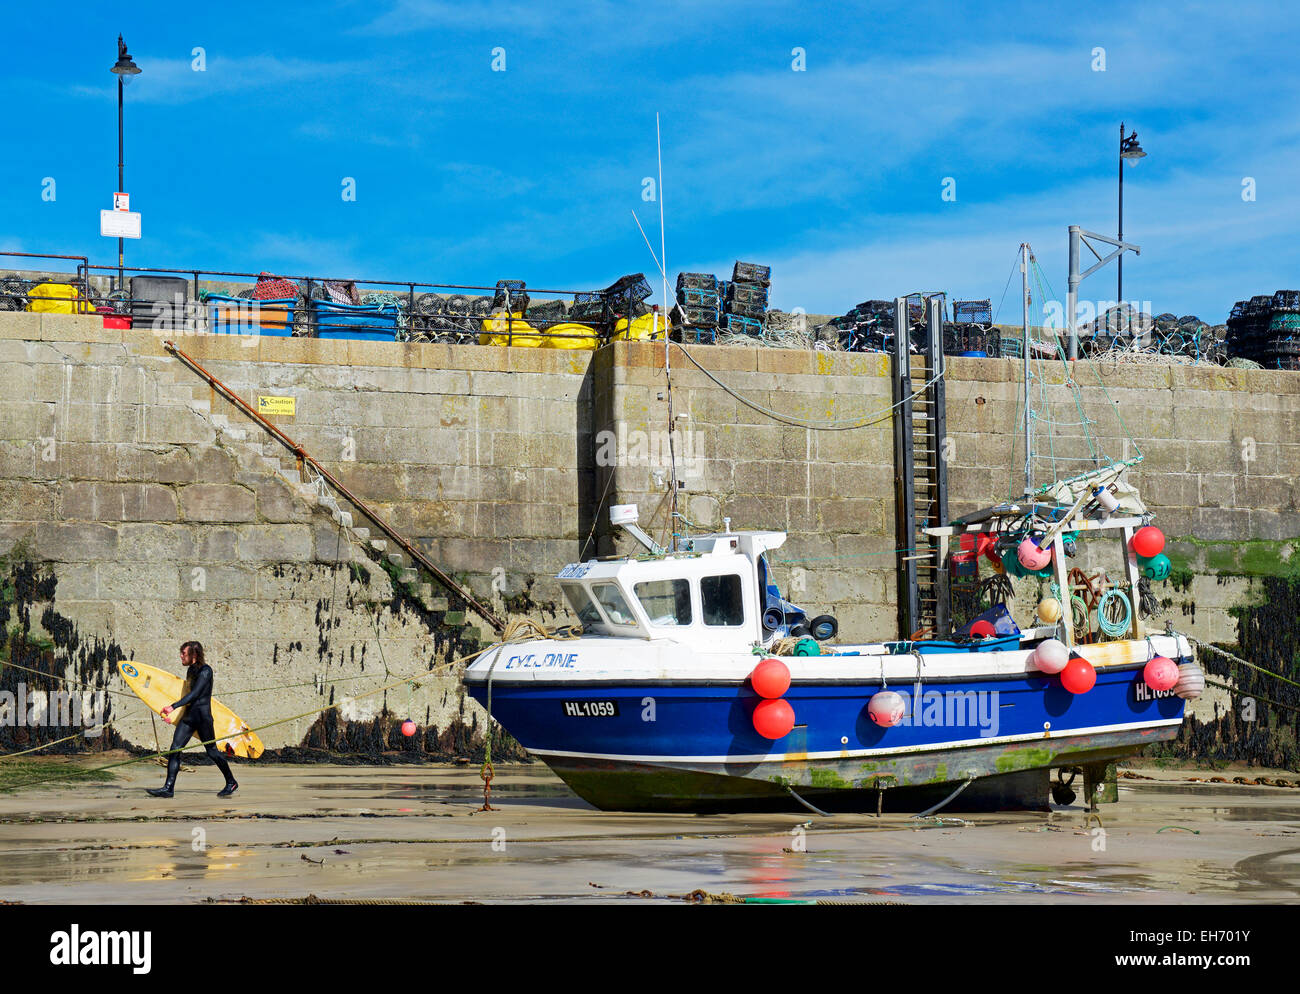 Surfer walking past a fishing boat in harbour, Newquay, Cornwall, England UK - Stock Image